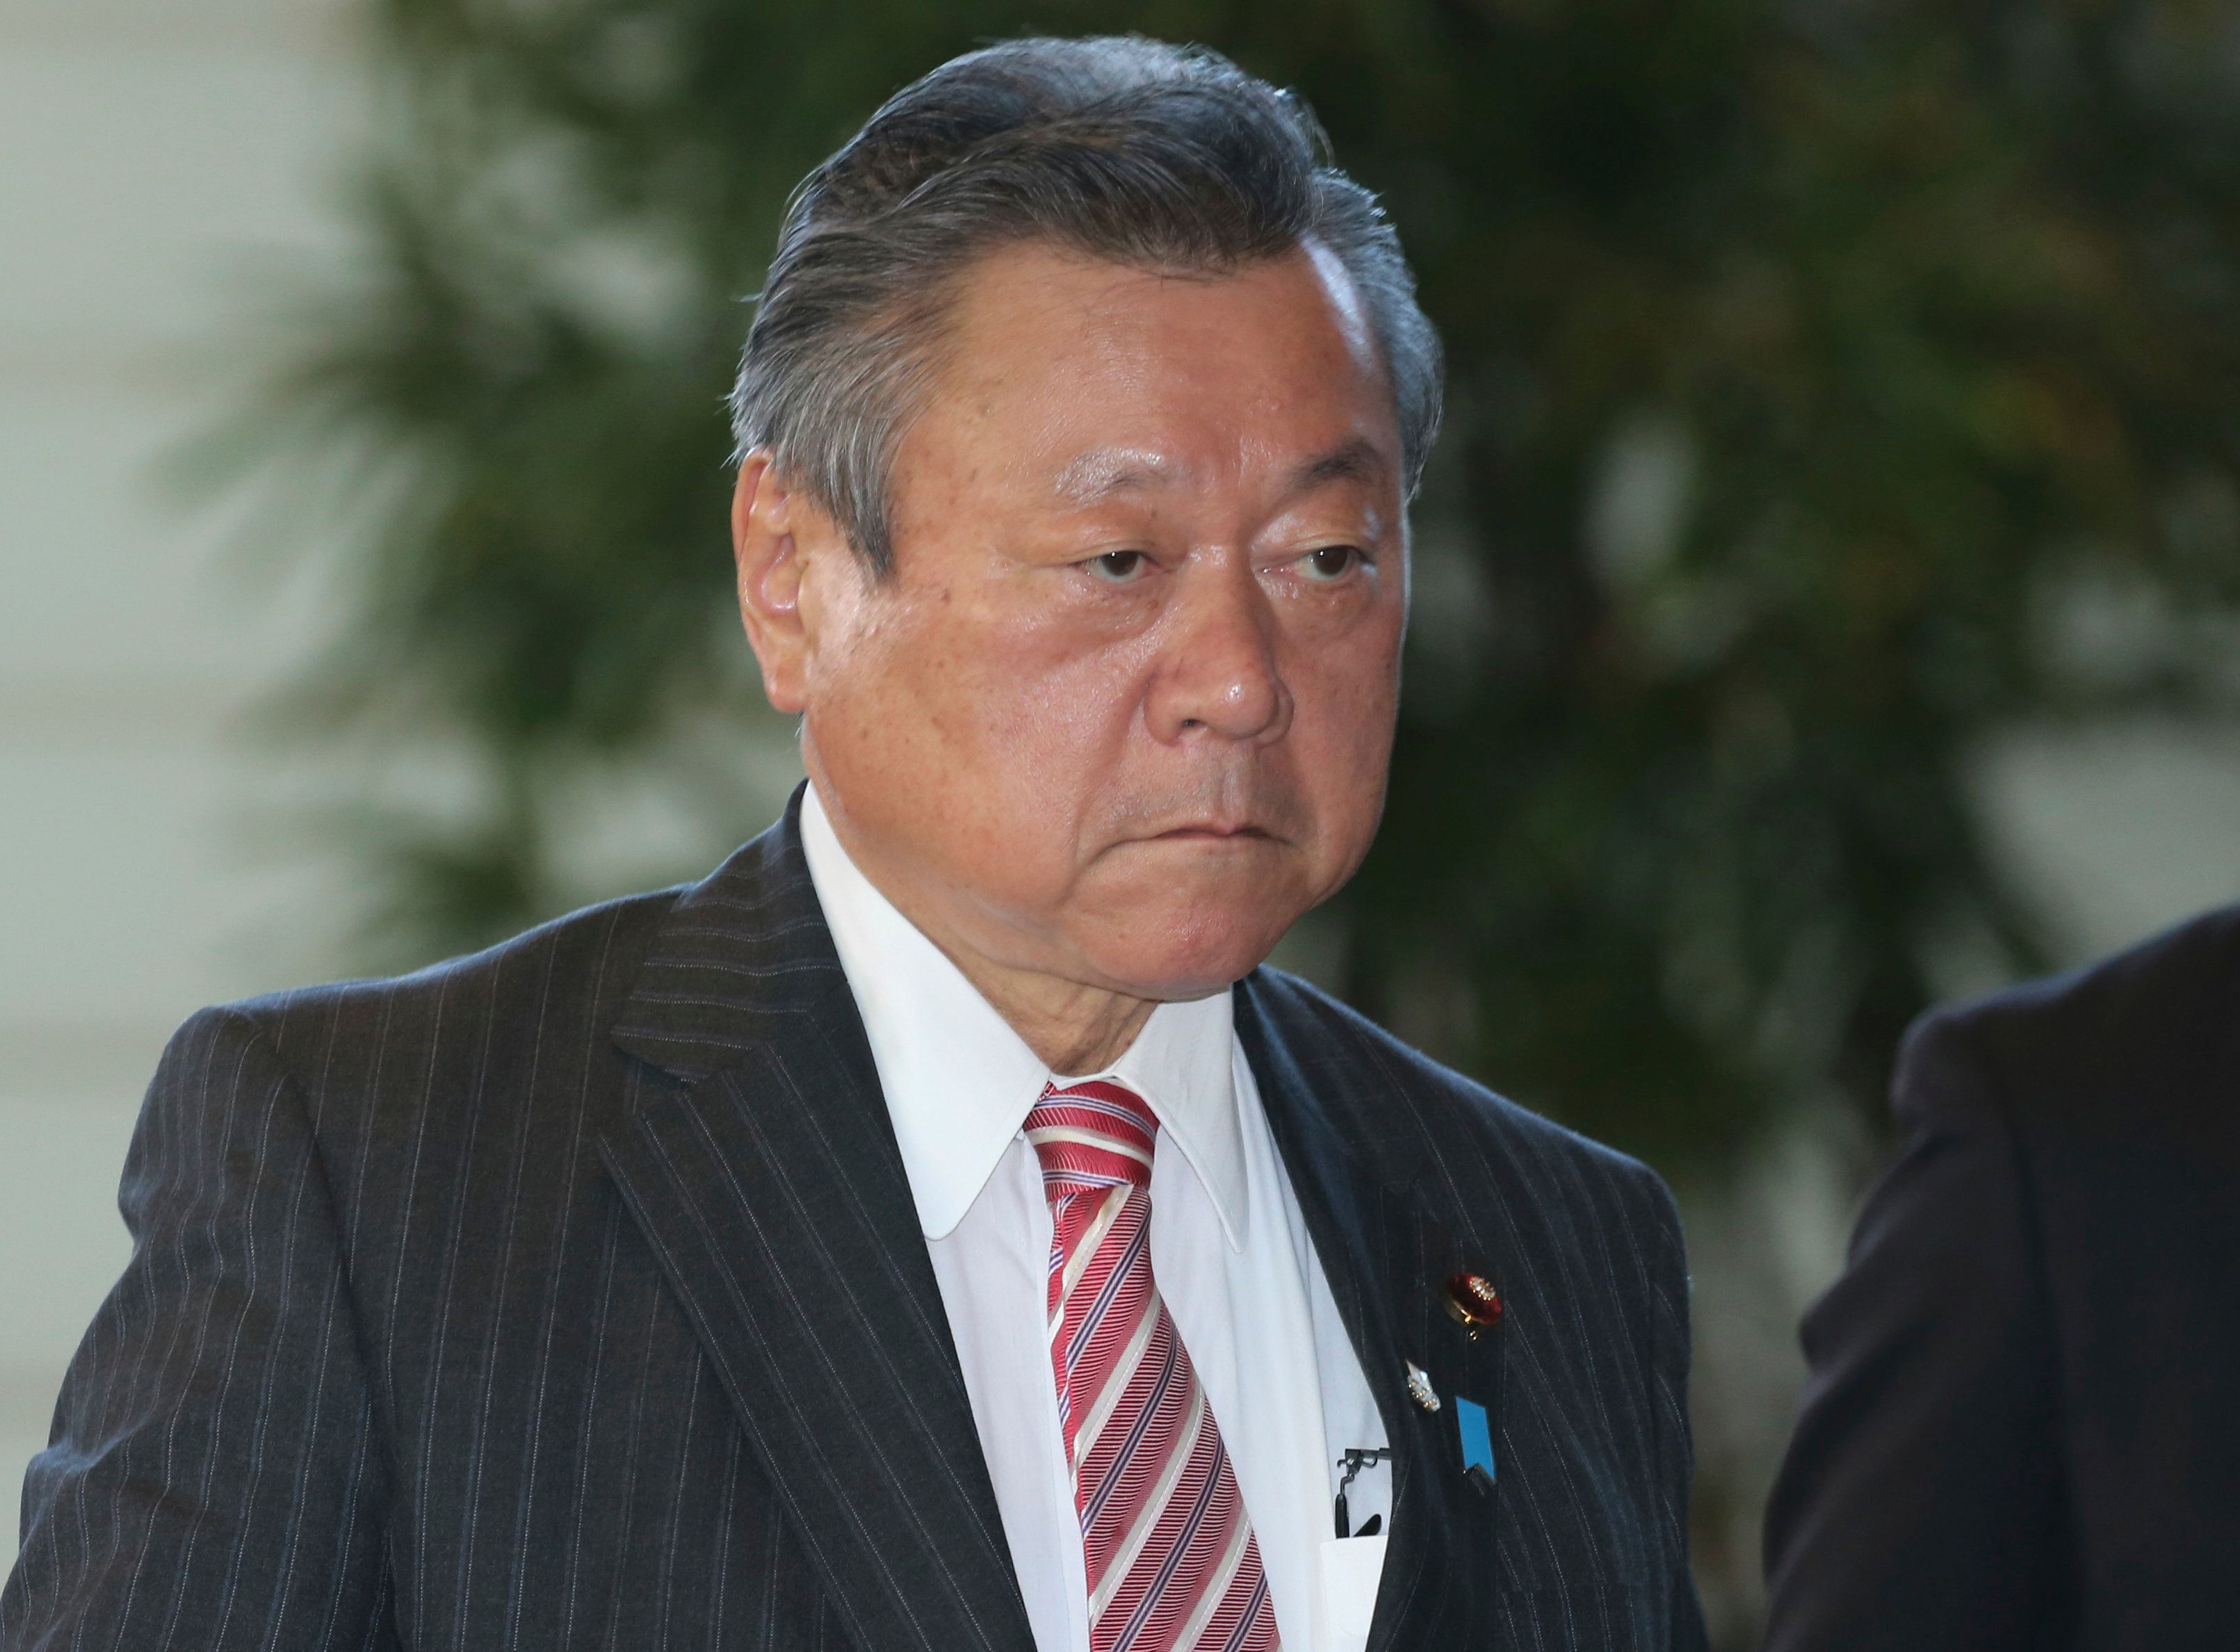 In this Oct. 2, 2018, file photo, Japan's Minister in Charge of Tokyo Olympics Yoshitaka Sakurada arrives at the prime minister's official residence in Tokyo. Sakurada, also the minister in charge of cybersecurity, is in the spotlight for acknowledging he had never used a computer and making comments showing he had no idea what a USB port might be. (AP Photo/Koji Sasahara, File)